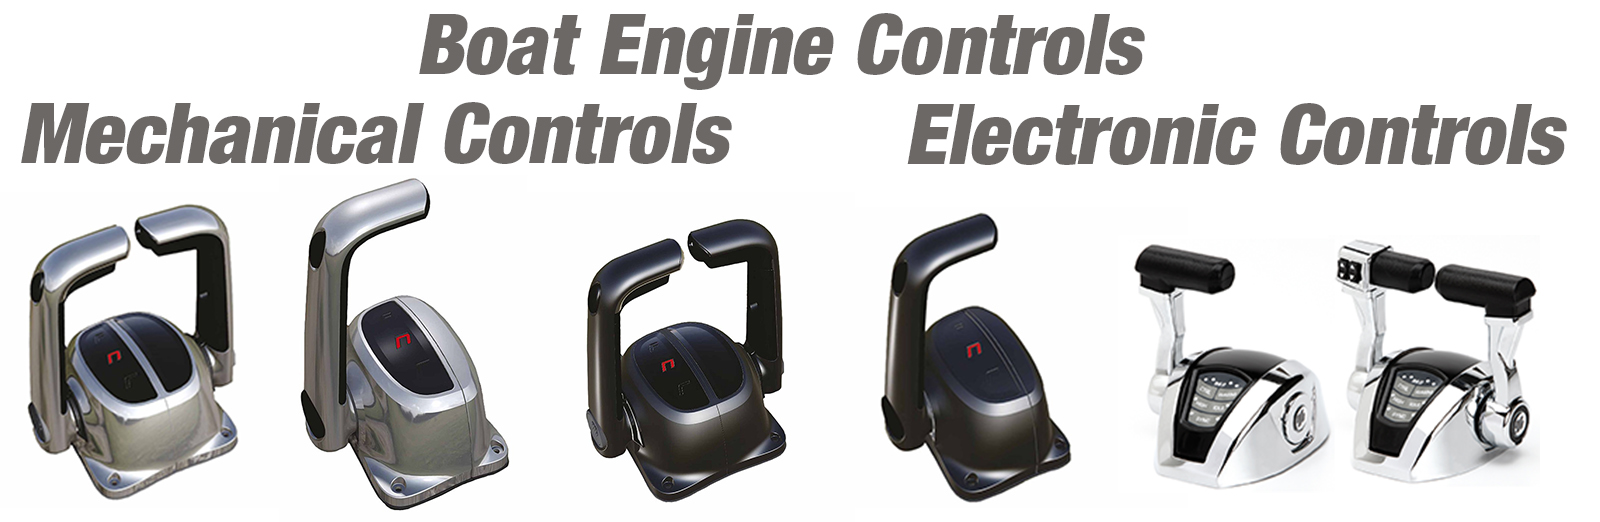 Boat Engine Controls